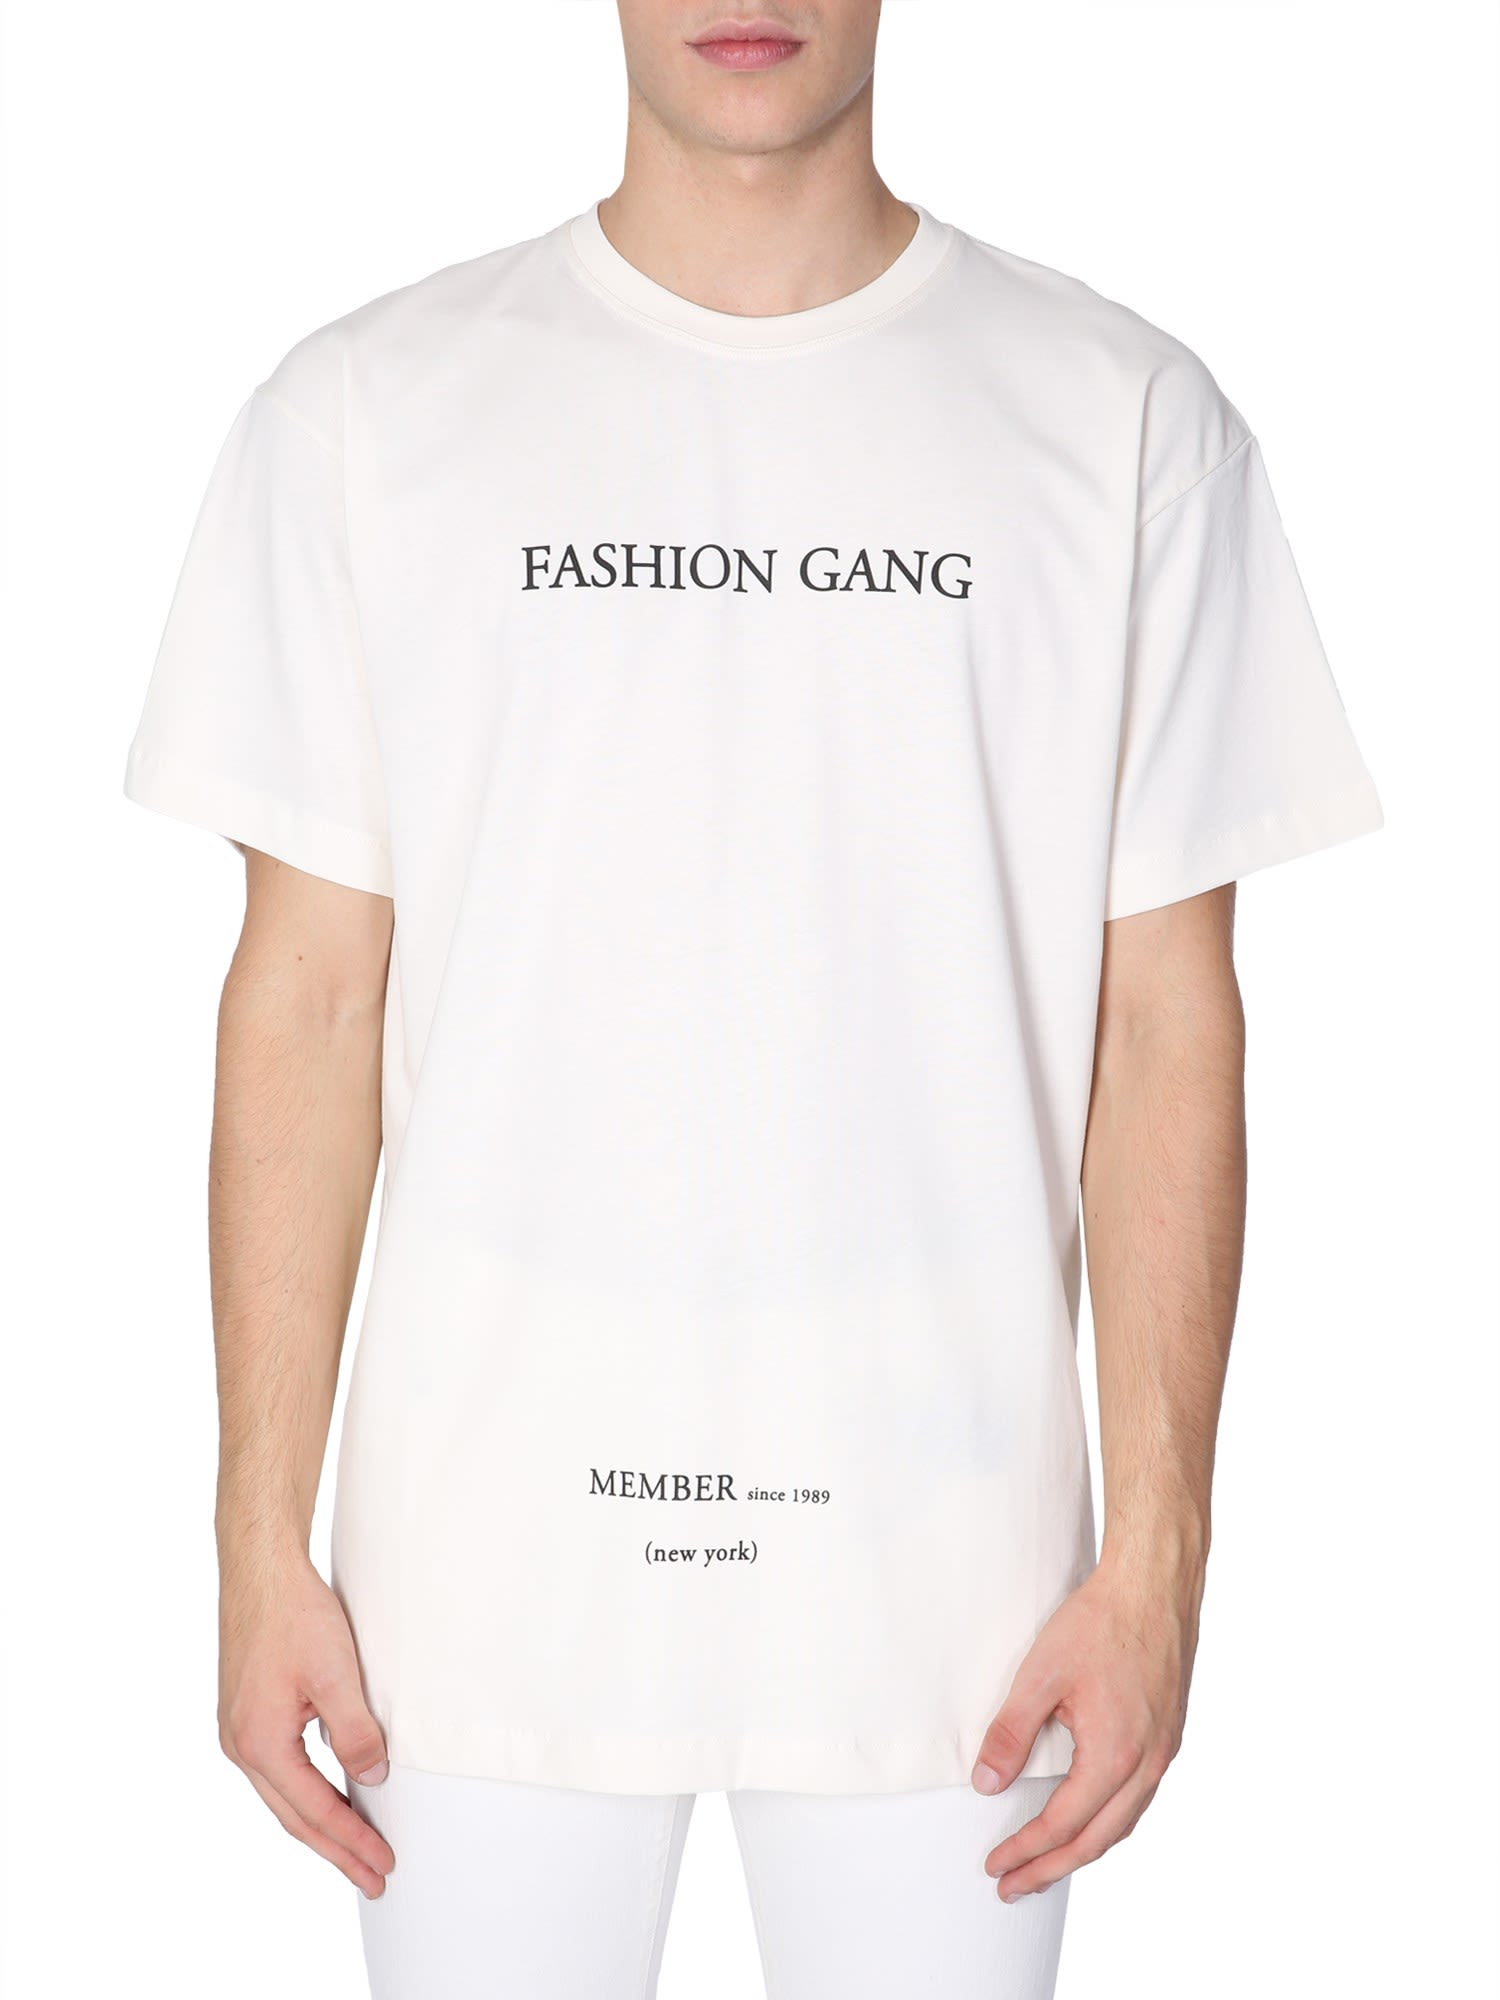 ih nom uh nit Fashion Gang New York Printed T-shirt